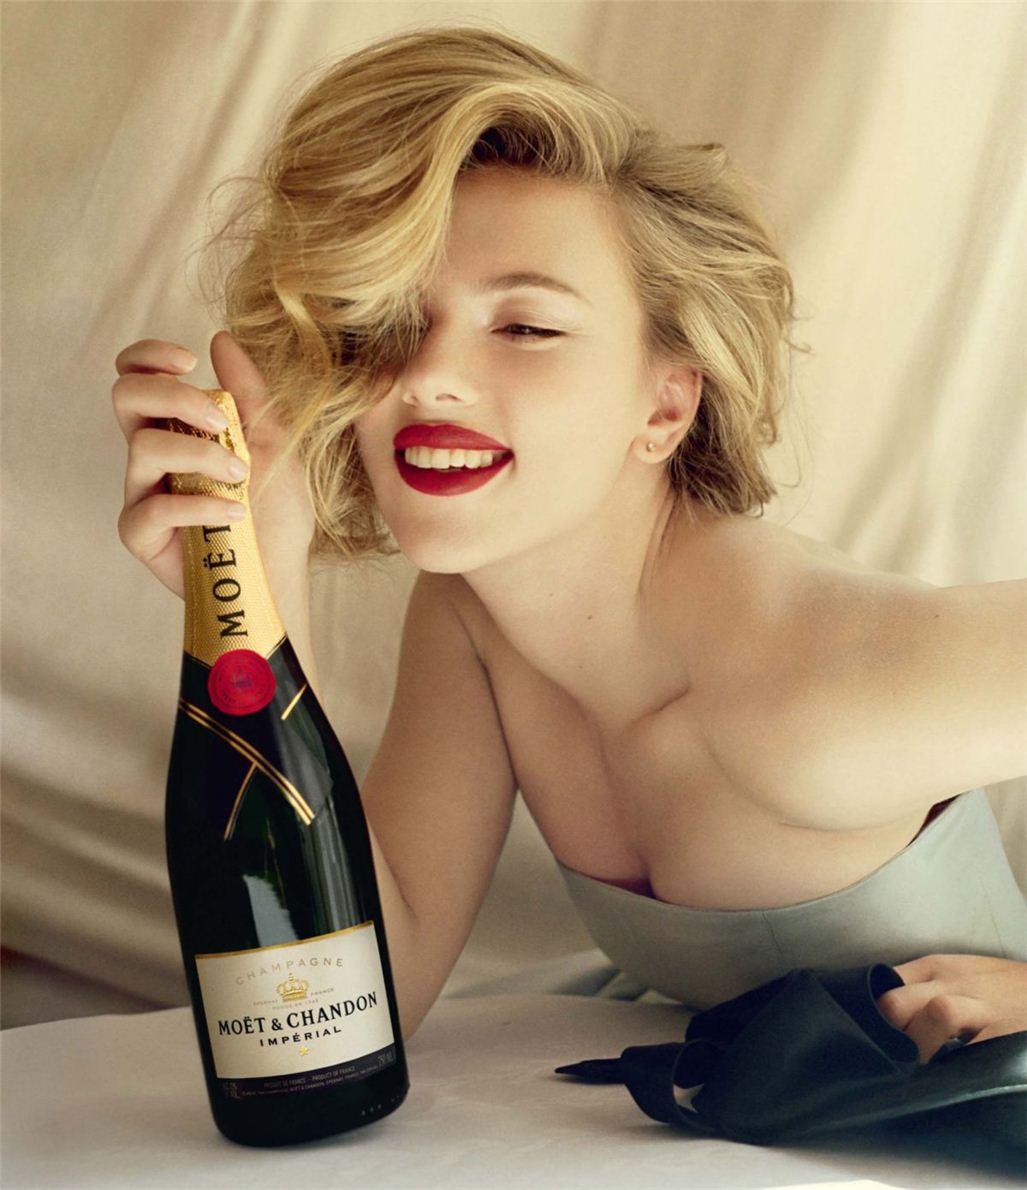 Скарлетт Йоханссон / Scarlett Johansson by Tim Walker for Moet-Chandon 2011